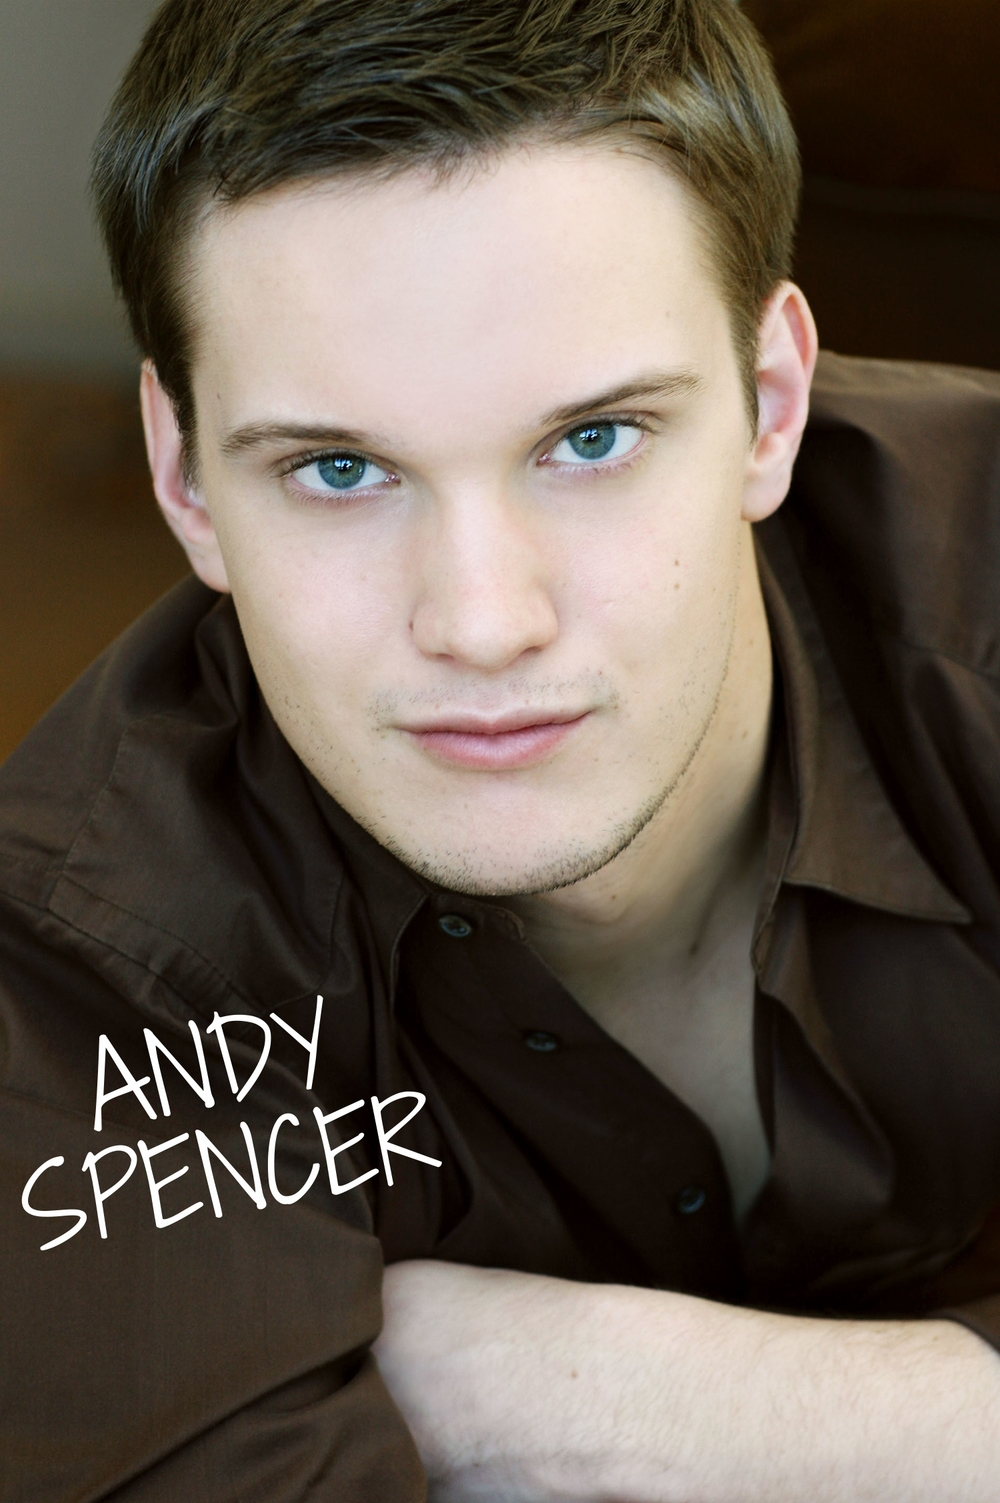 ANDY SPENCER